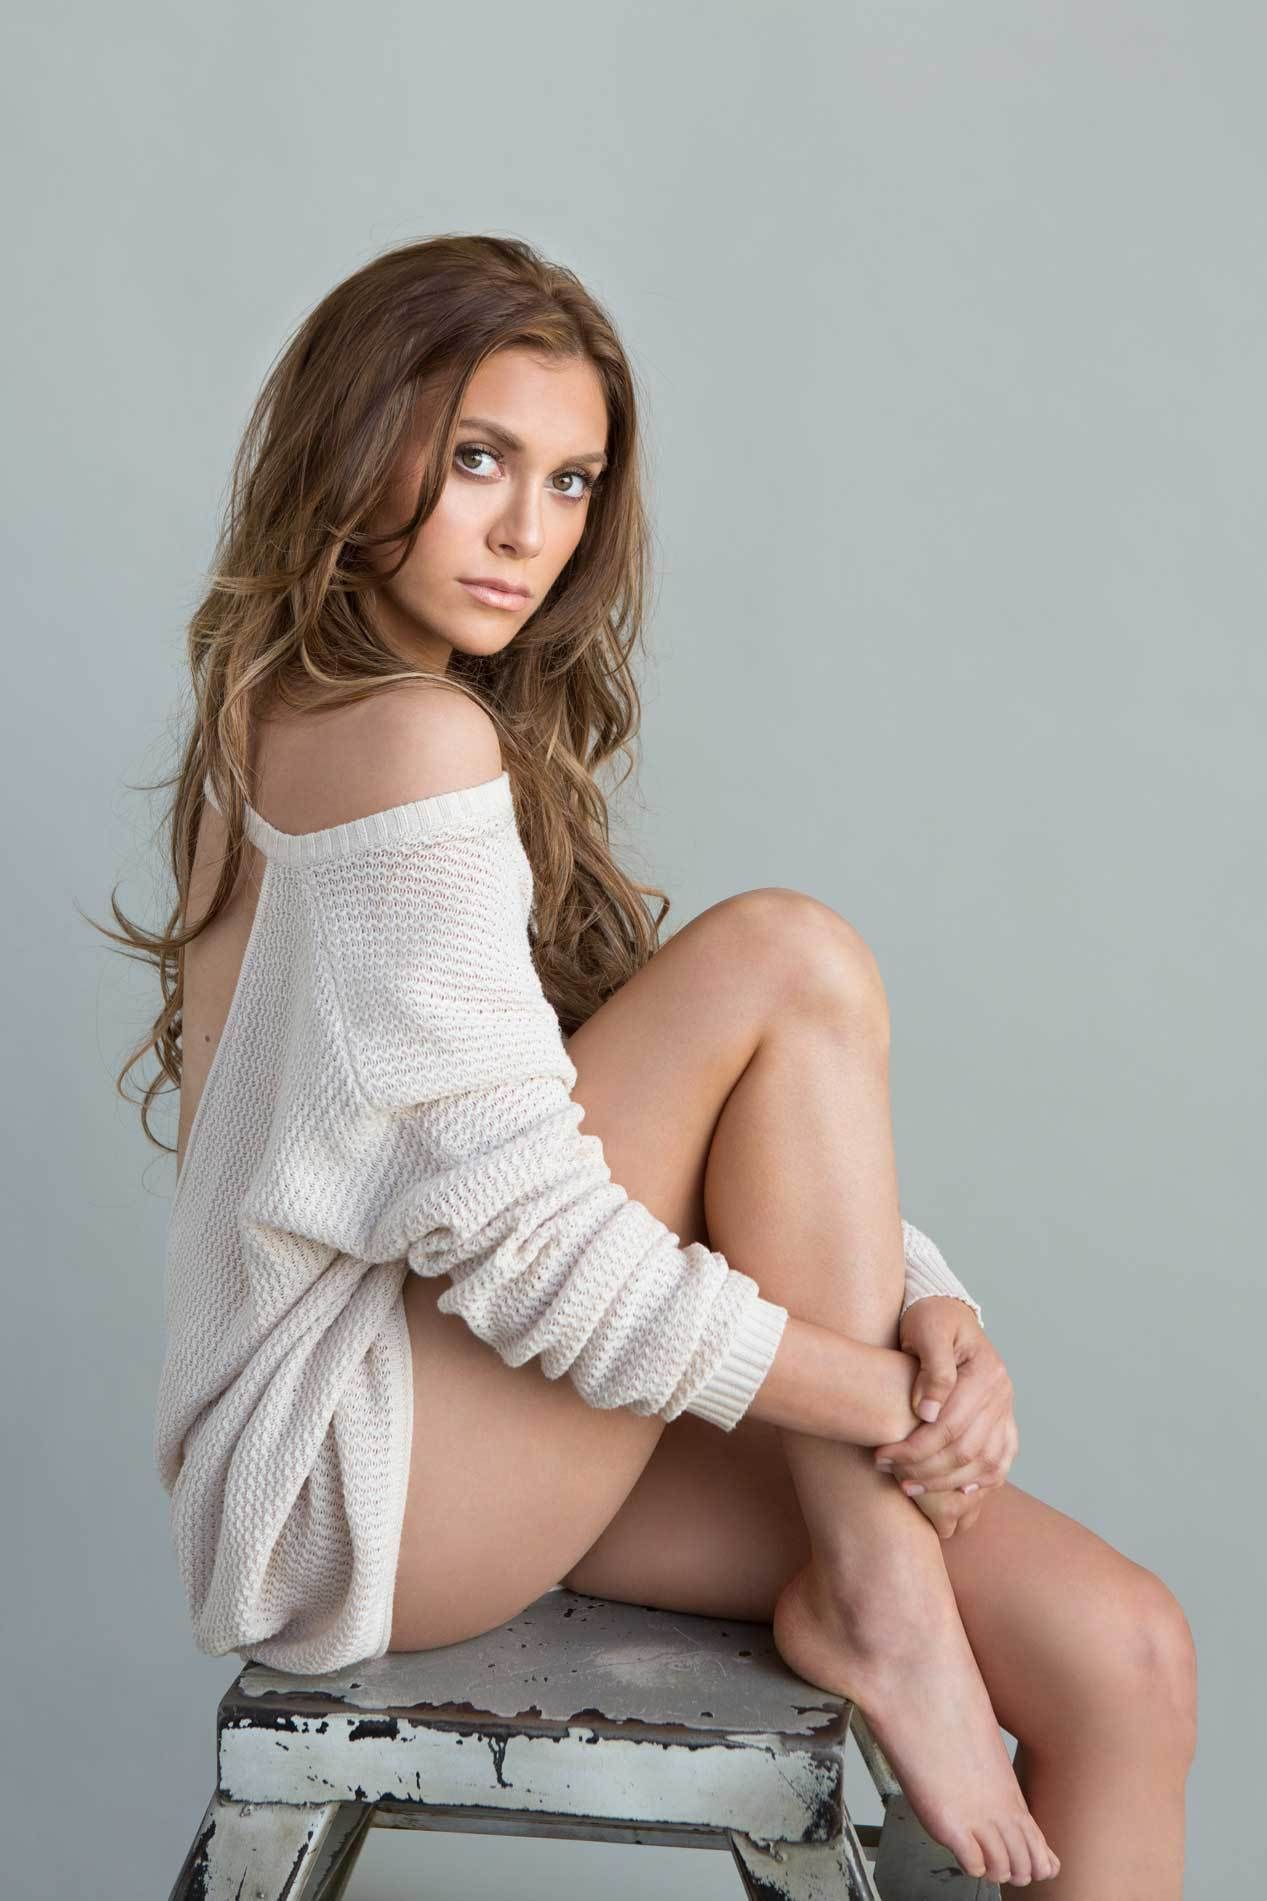 Alyson Stoner Nude Pics alyson stoner | alyson stoner, celebrity pictures, actresses